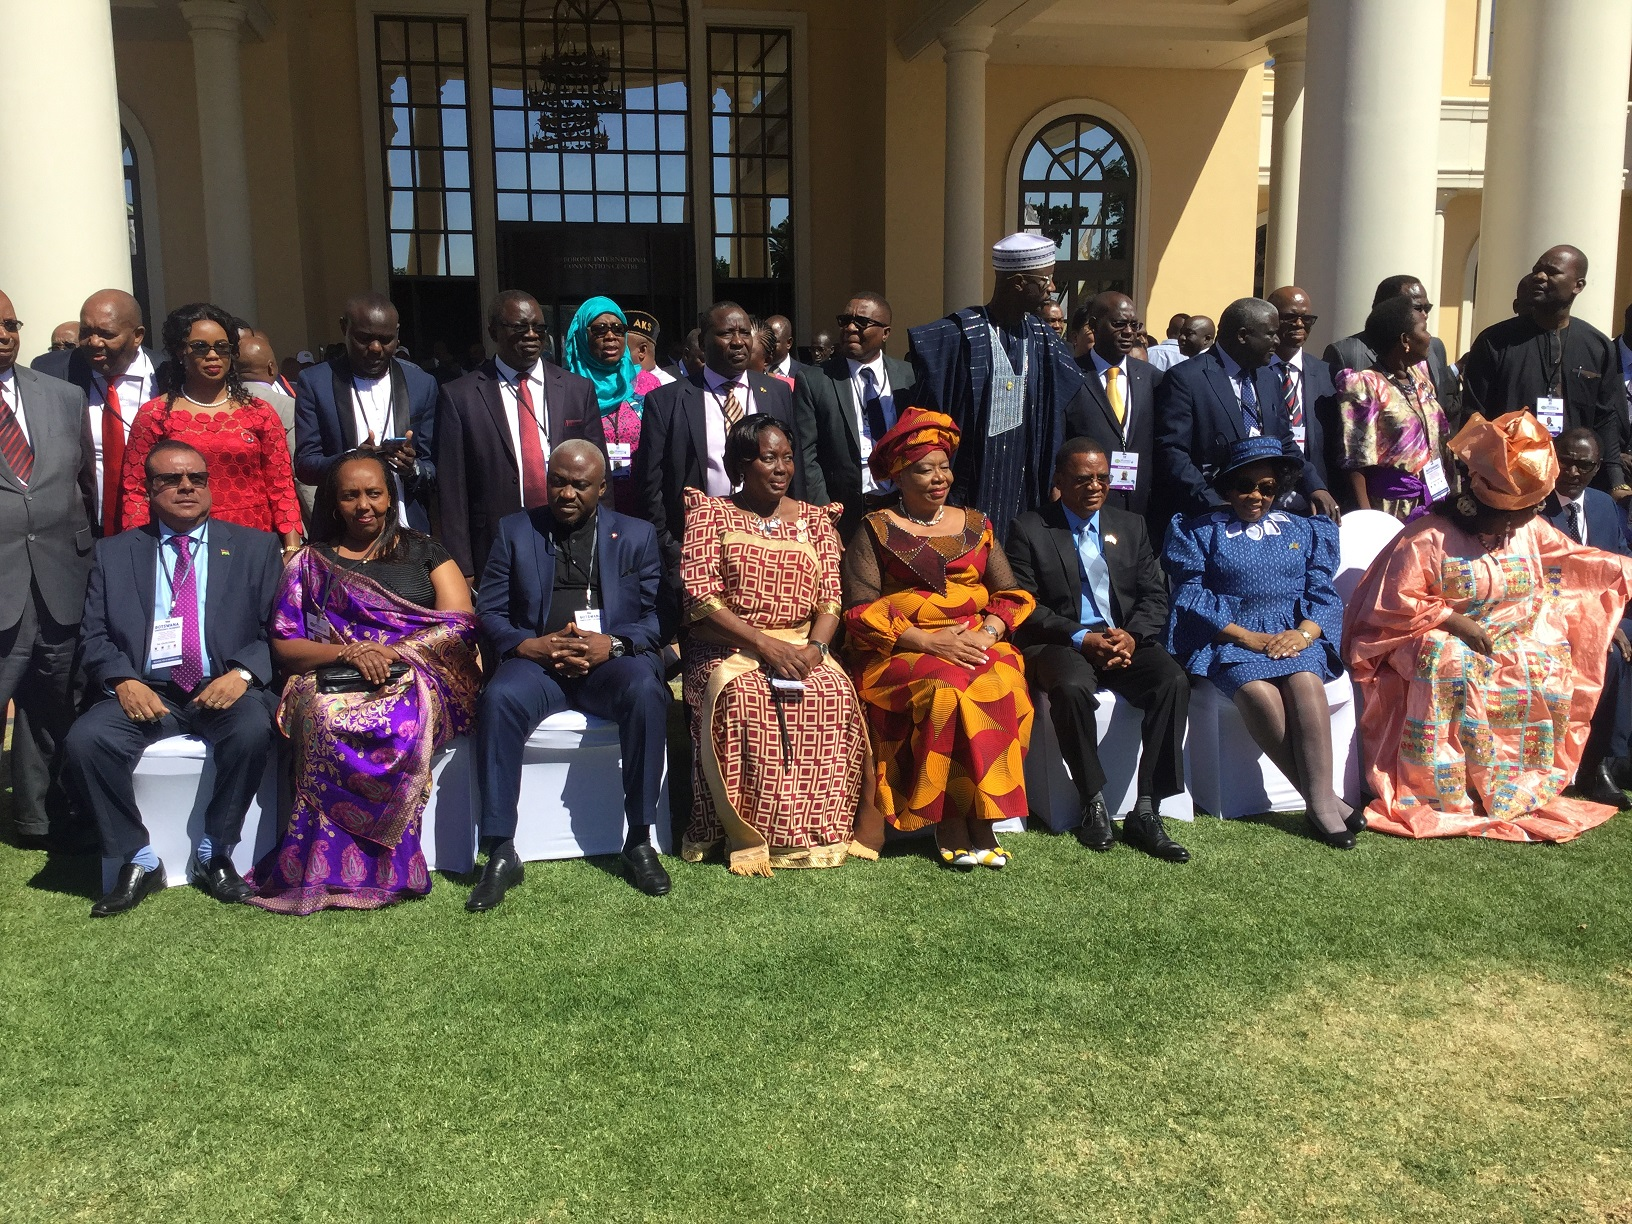 Speaker-of-Parliament-Rebecca-Kadaga-in-a-group-photo-with-legislators